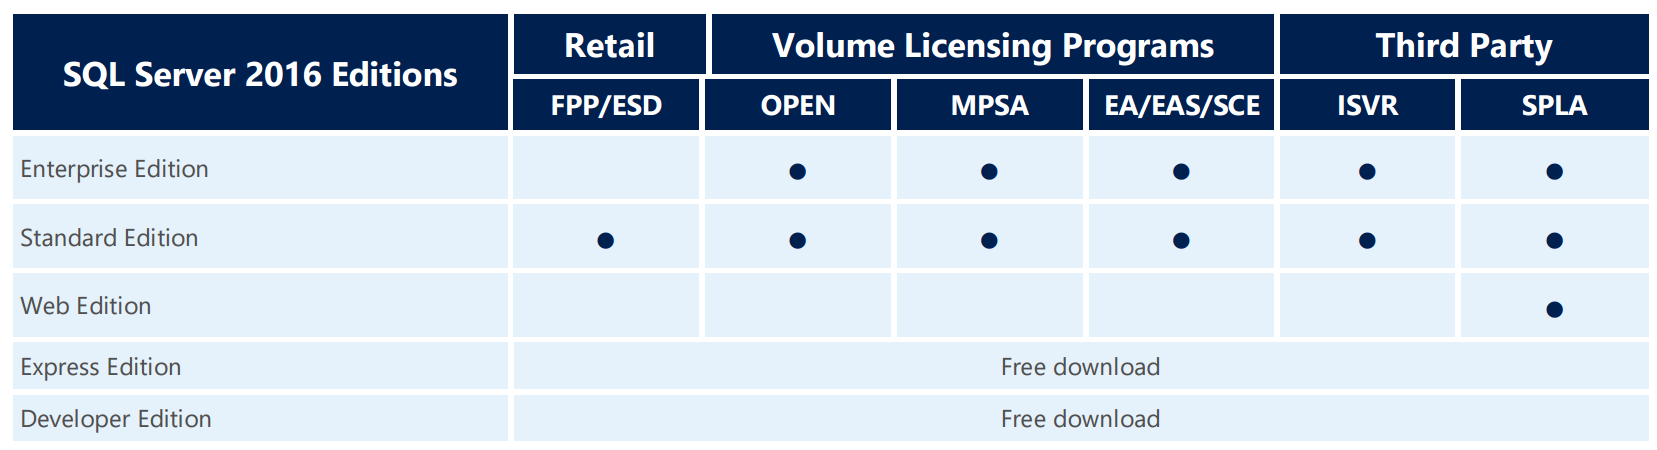 What's New in SQL Server 2016 Licensing